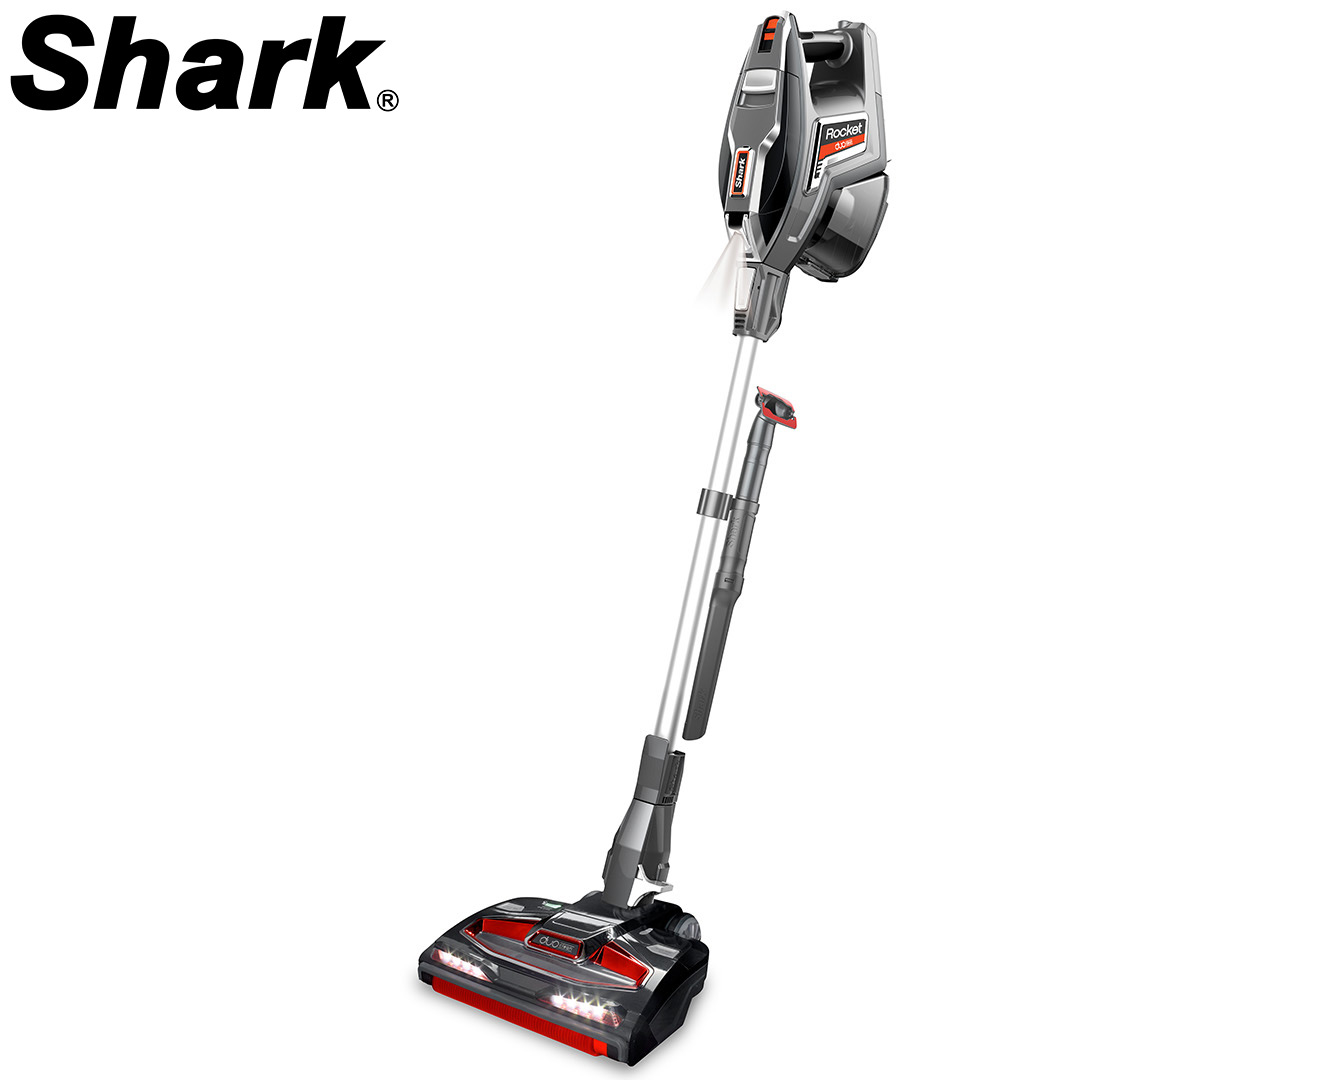 Shark Rocket Duoclean Vacuum Cleaner Red Great Daily